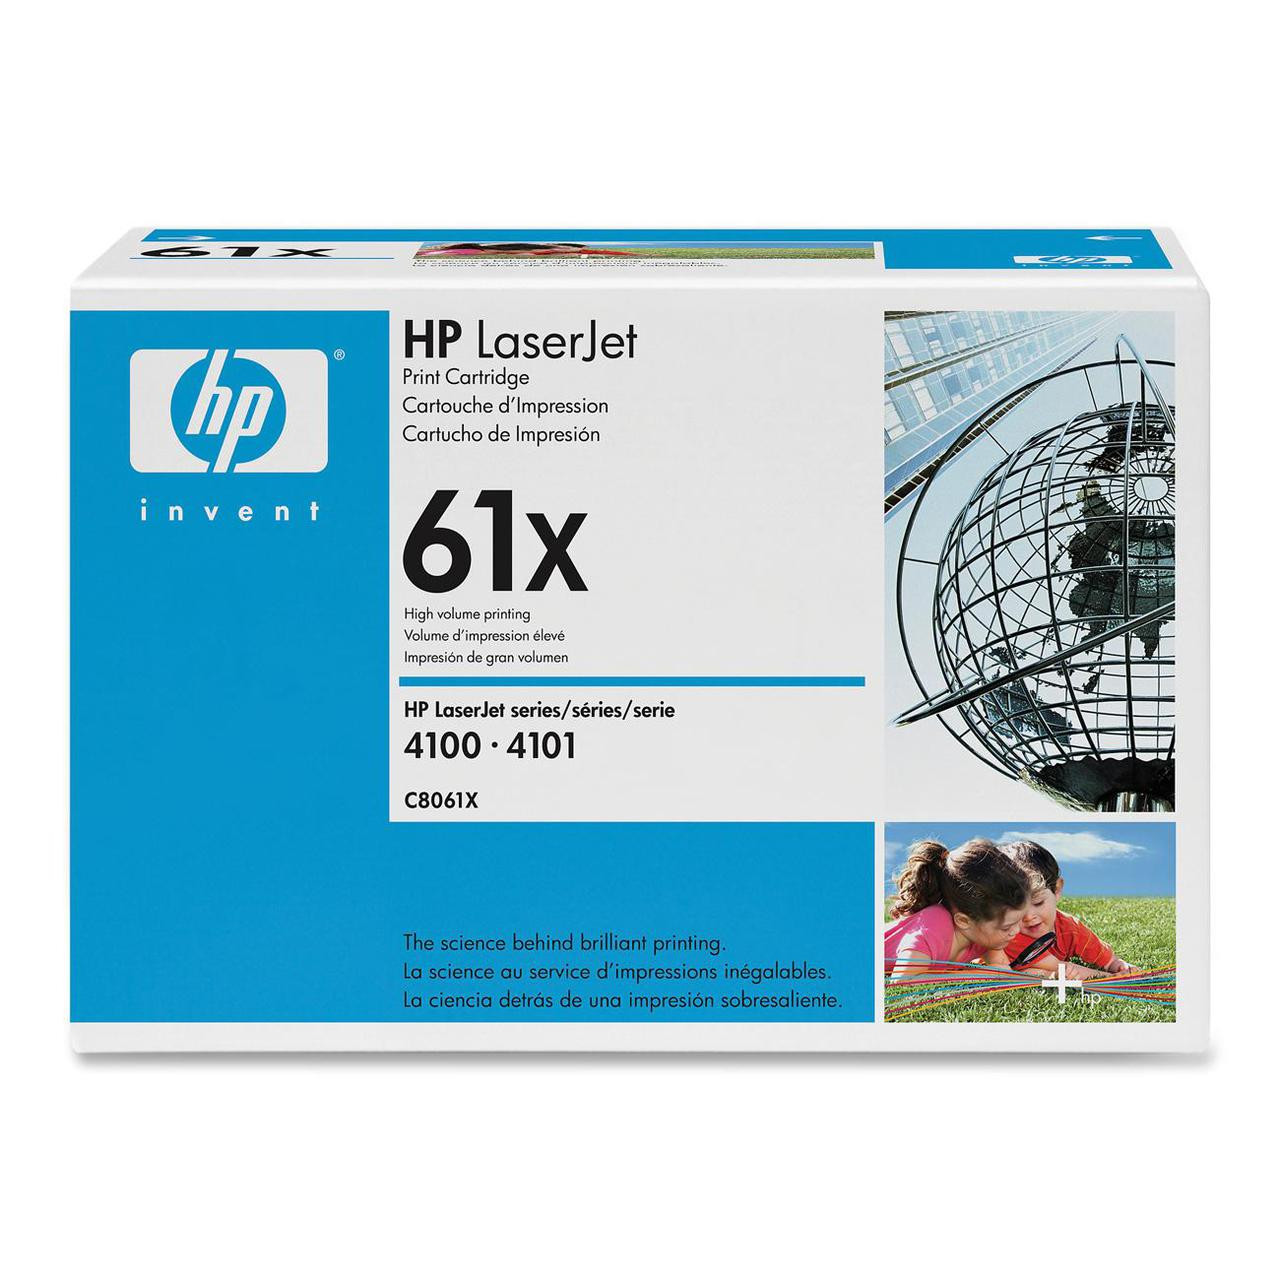 HP 4100 Toner Cartridge - New